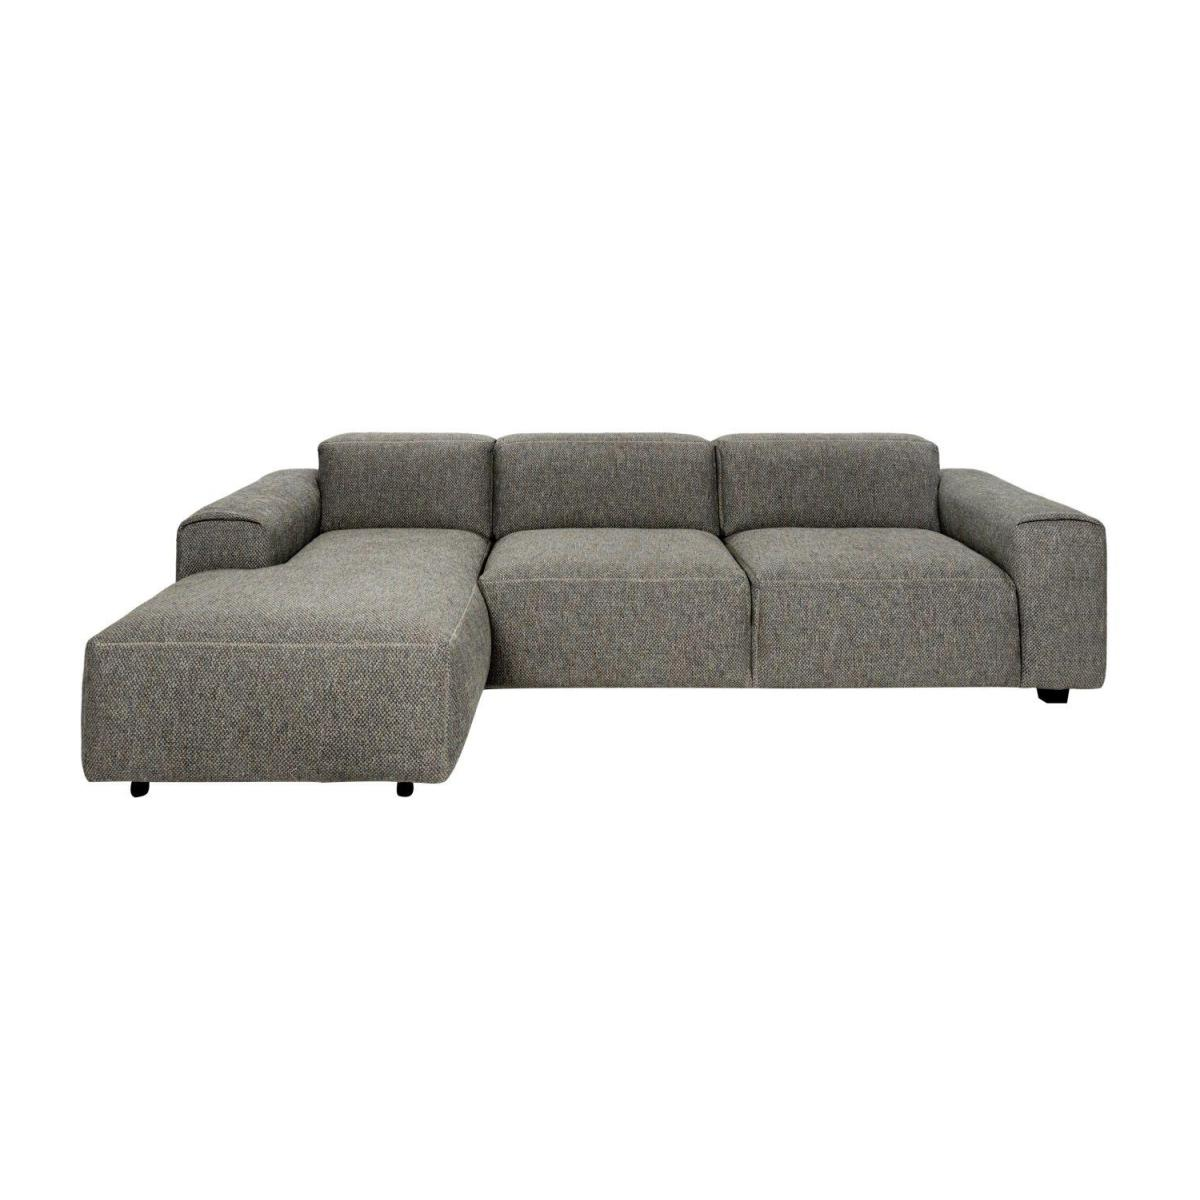 Sofá 3 plazas con chaiselongue izquierda de tela Bellagio night black n°3